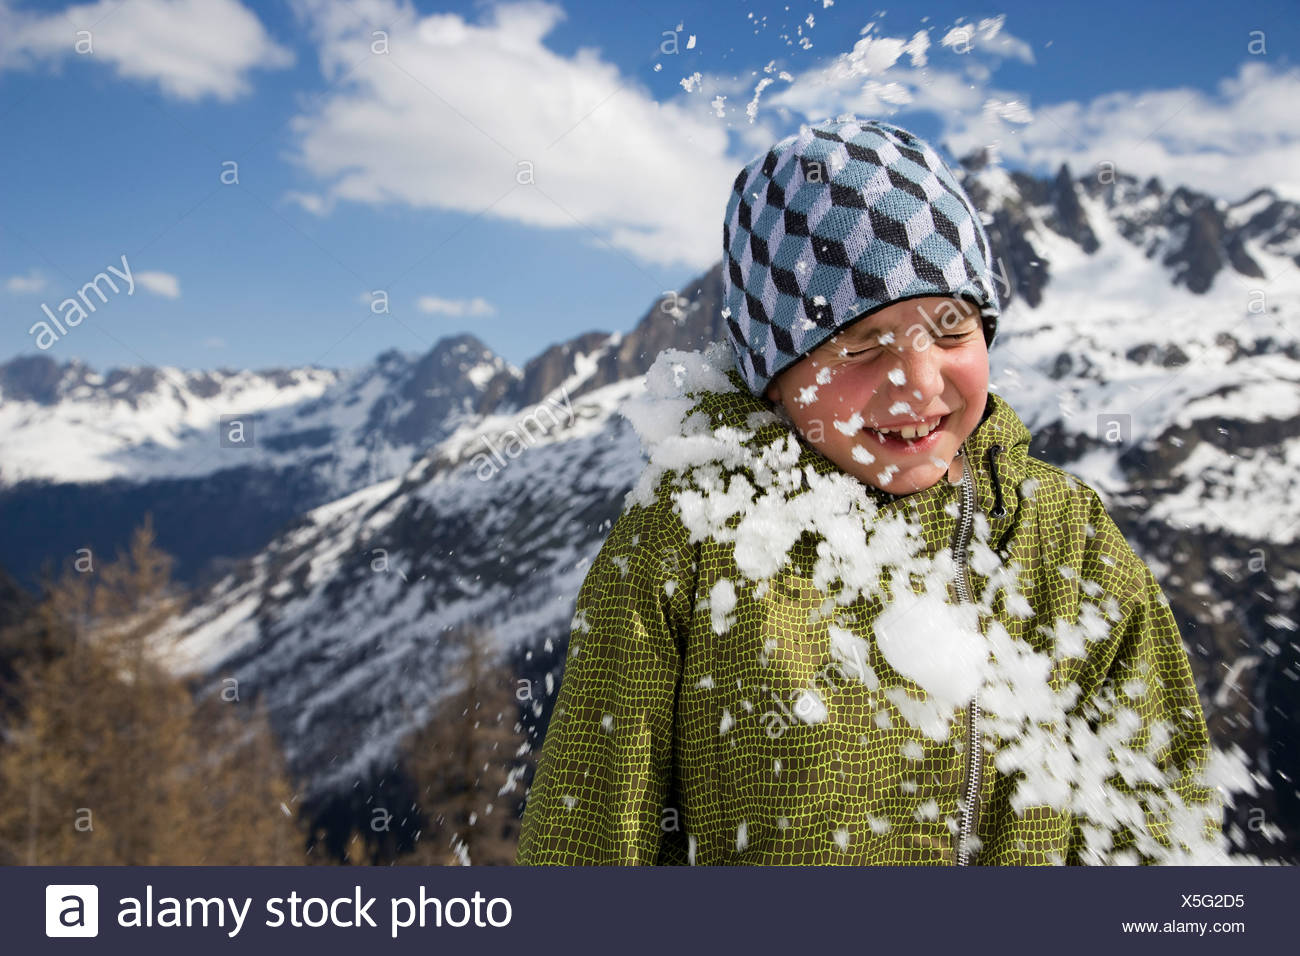 Boy hit by snowball. - Stock Image